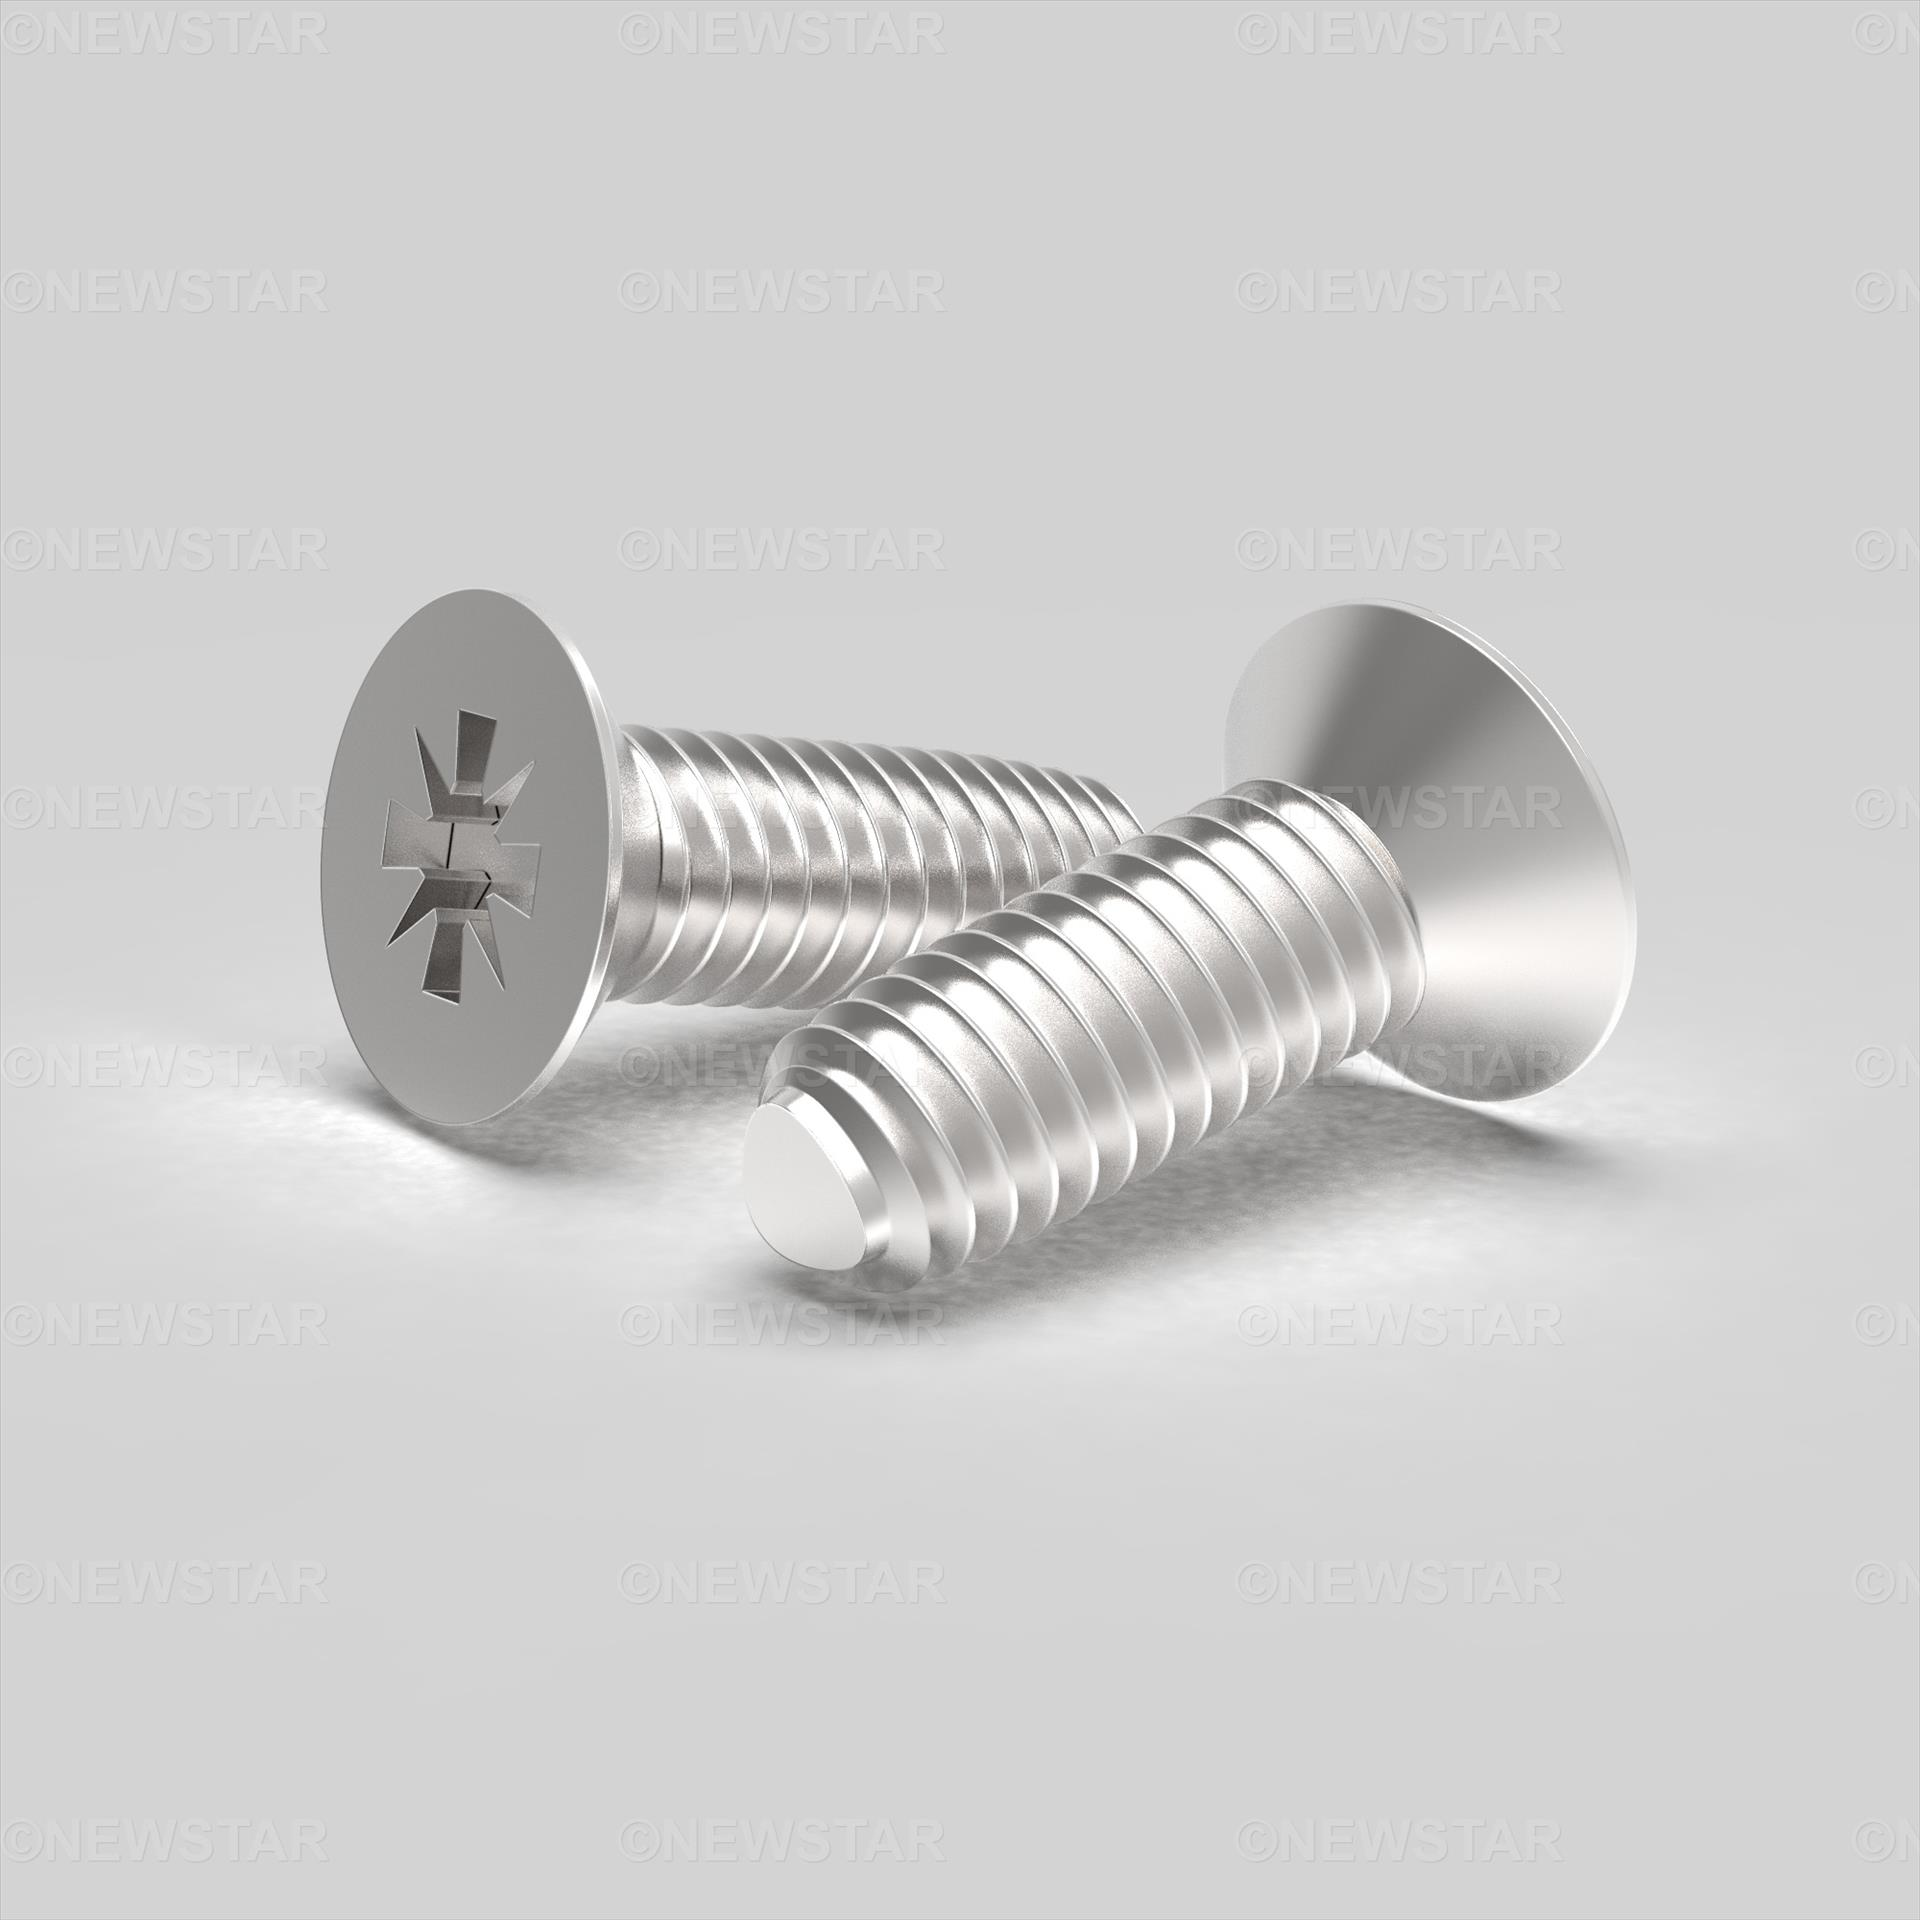 M3 X 16 Countersunk Pozi Thread Forming Screw DIN7500M Steel Zinc